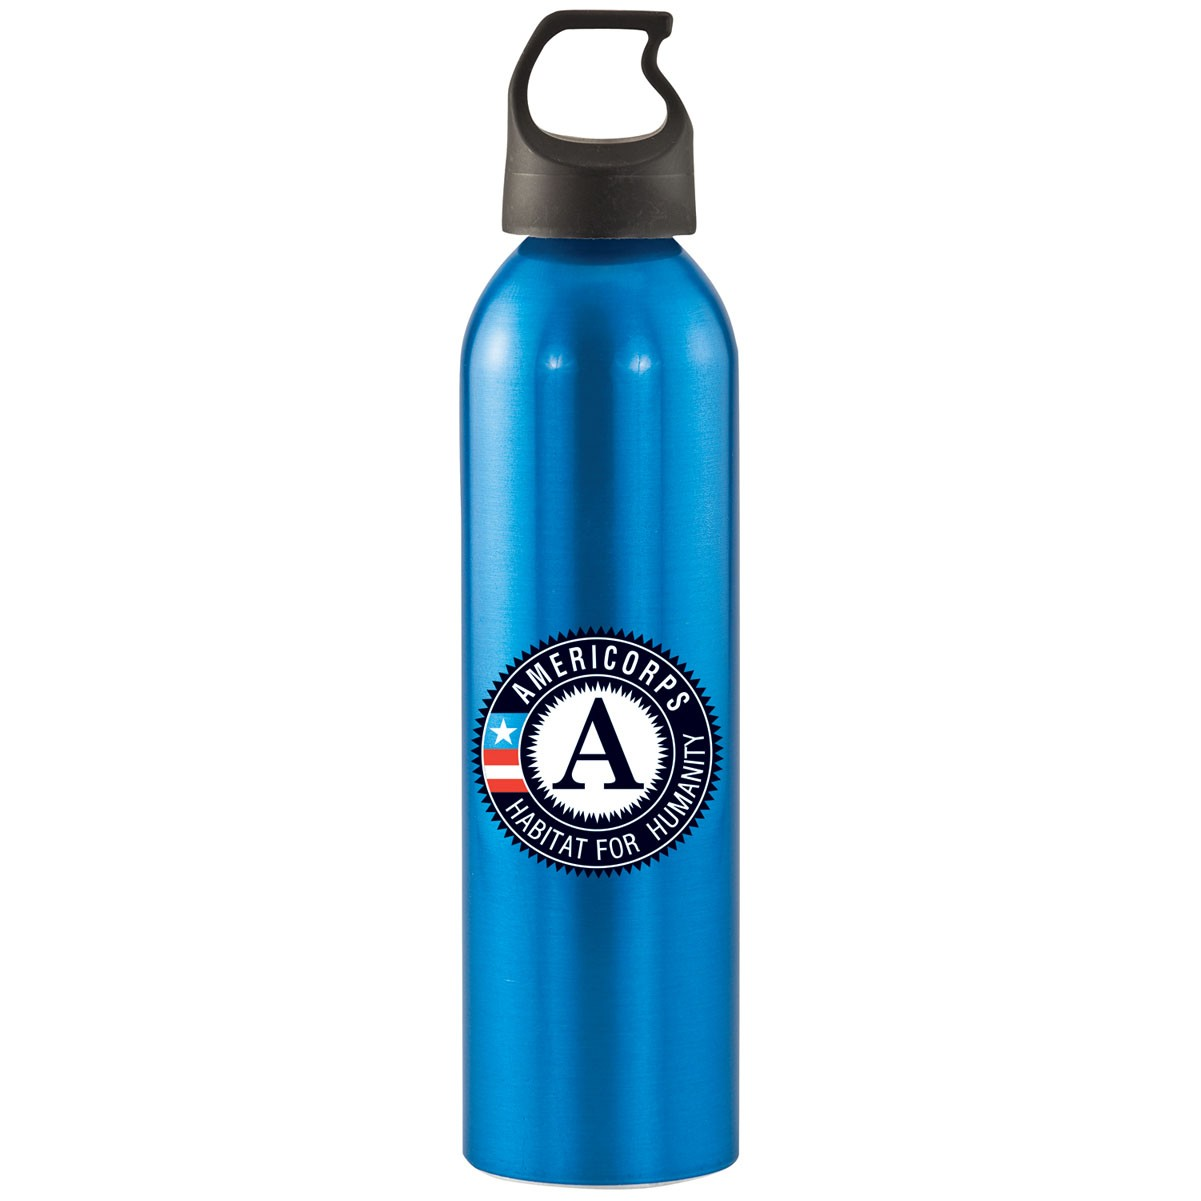 24 Oz. Patriot Aluminum Bottle